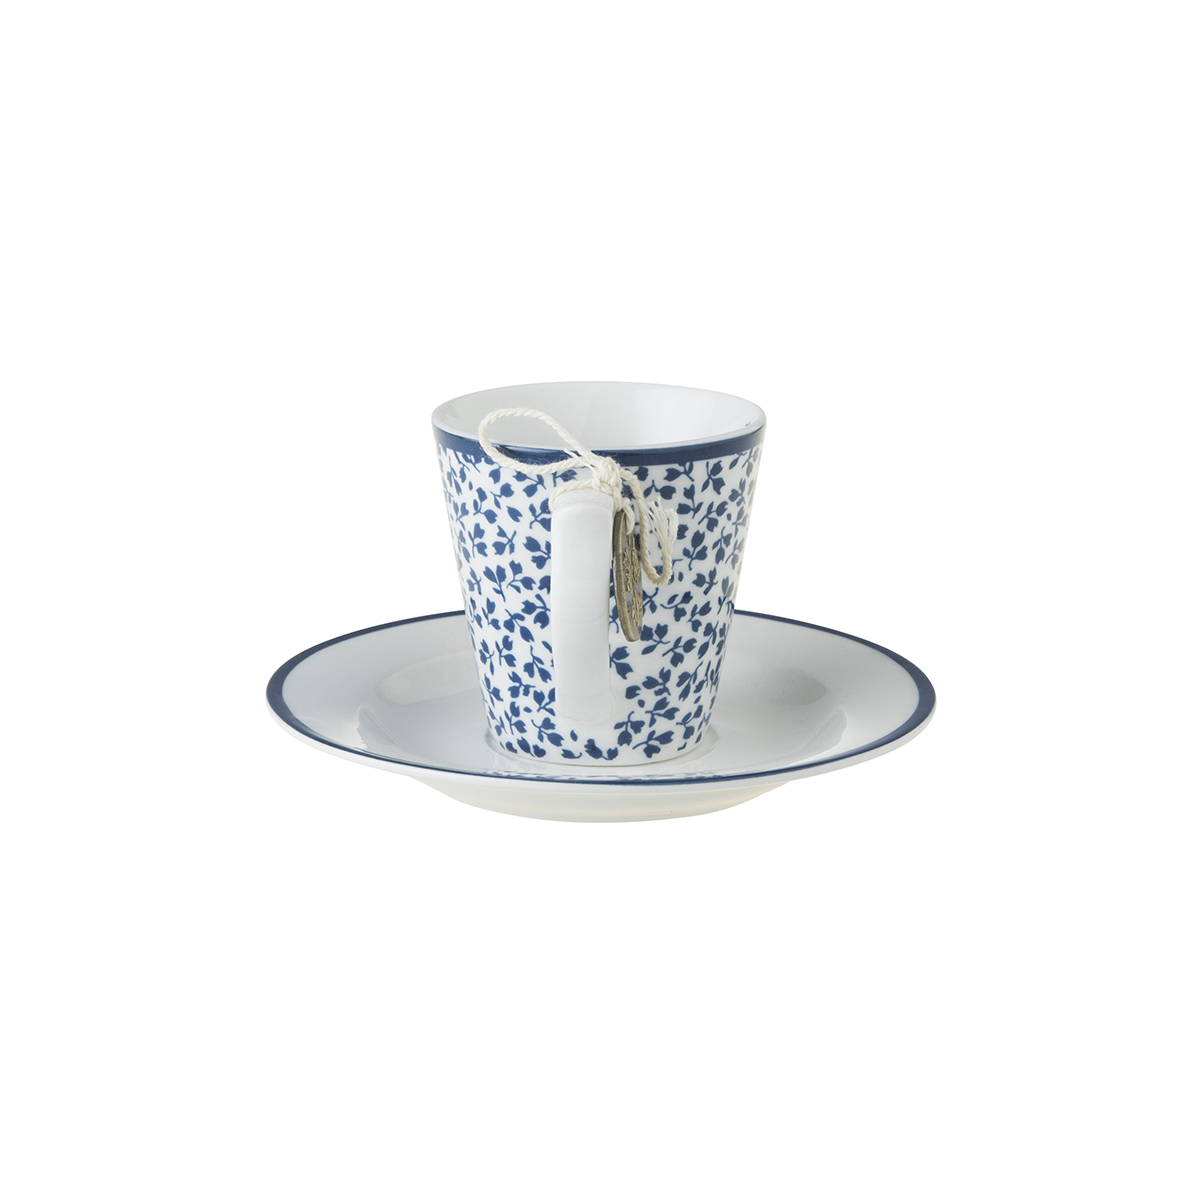 kop-en-schotel-espresso-floris-laura-ashley-178693